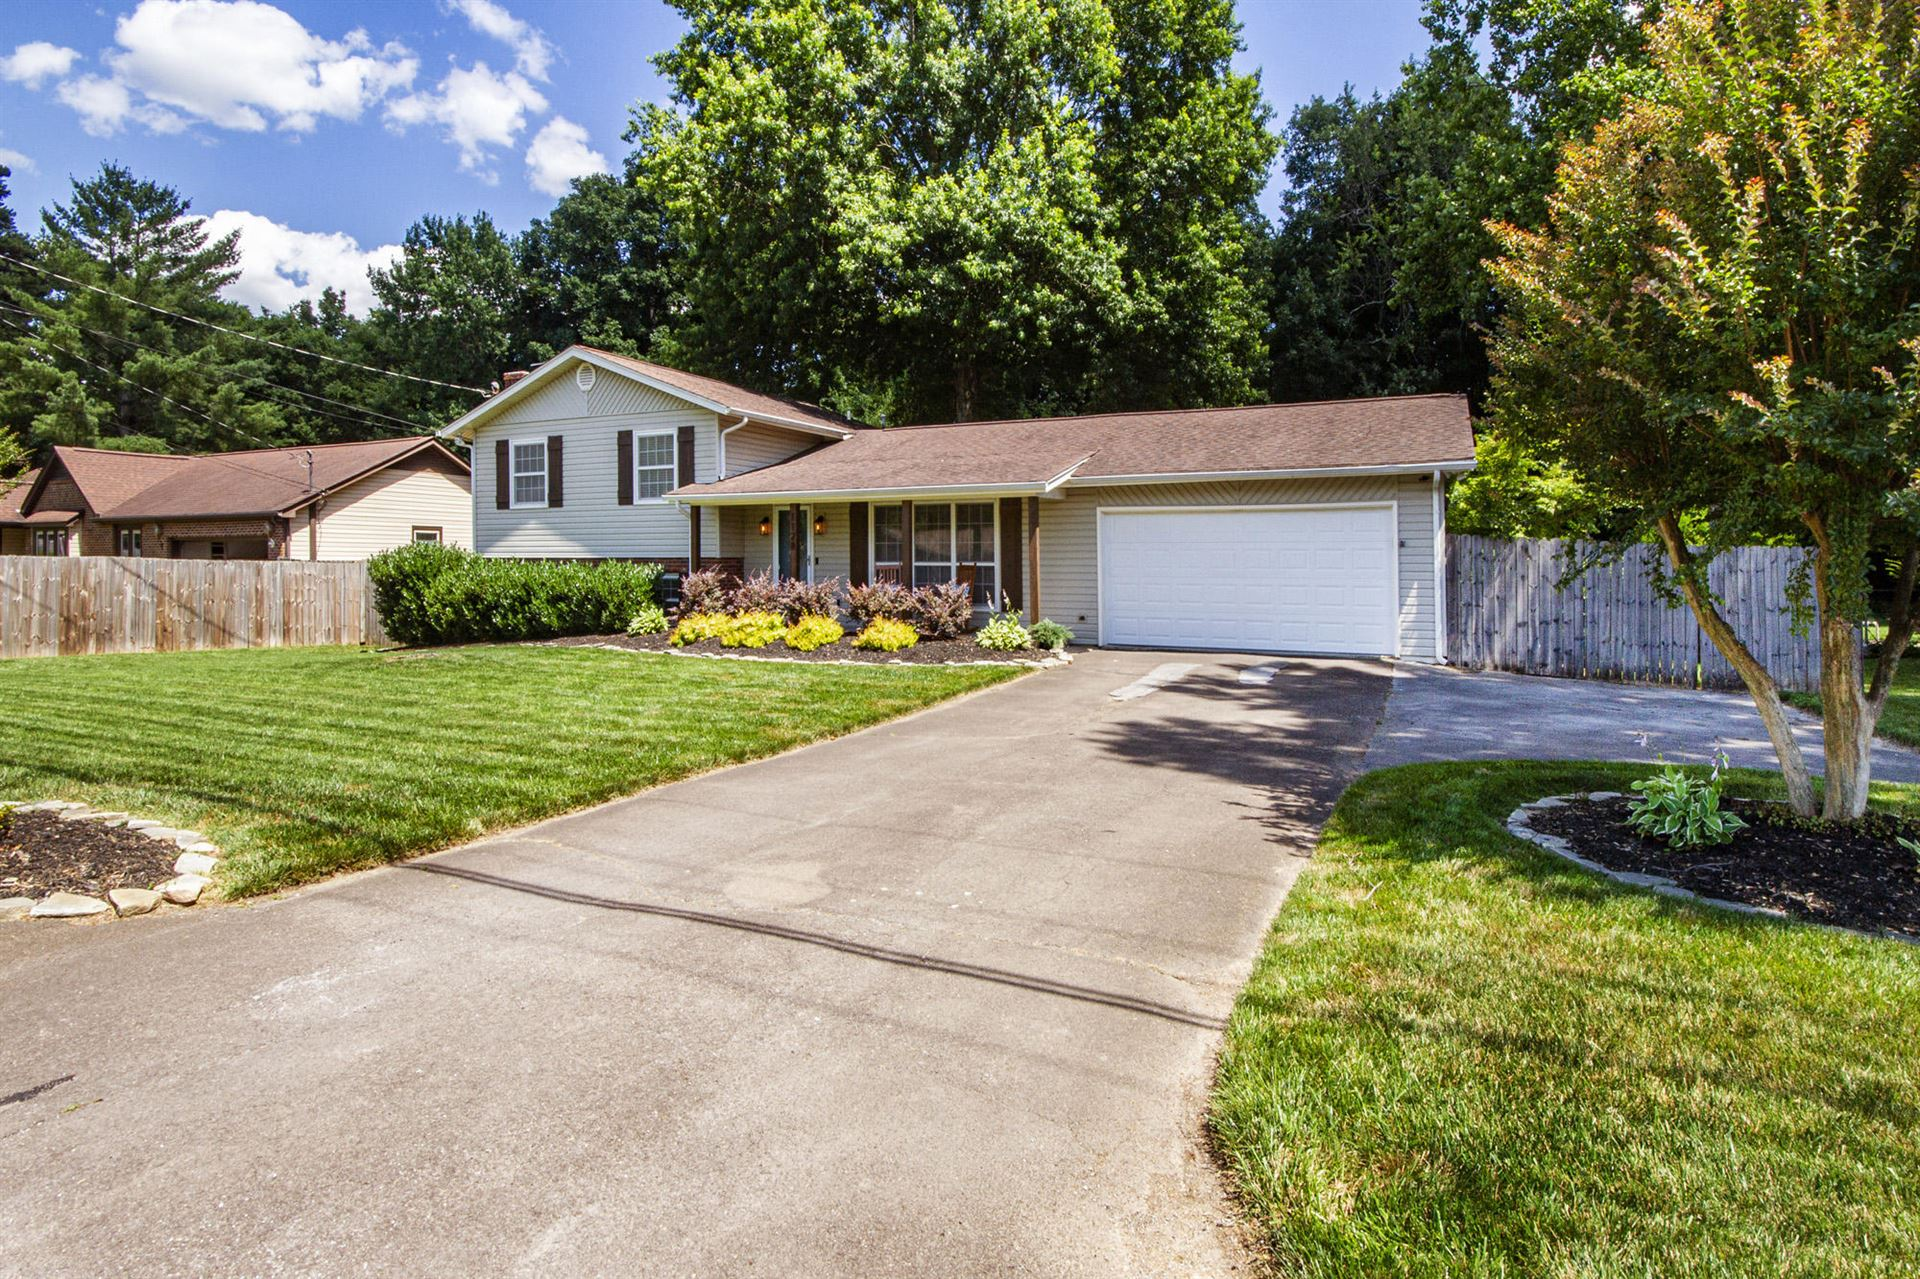 Photo of 1128 Lovell View Drive, Knoxville, TN 37932 (MLS # 1156864)